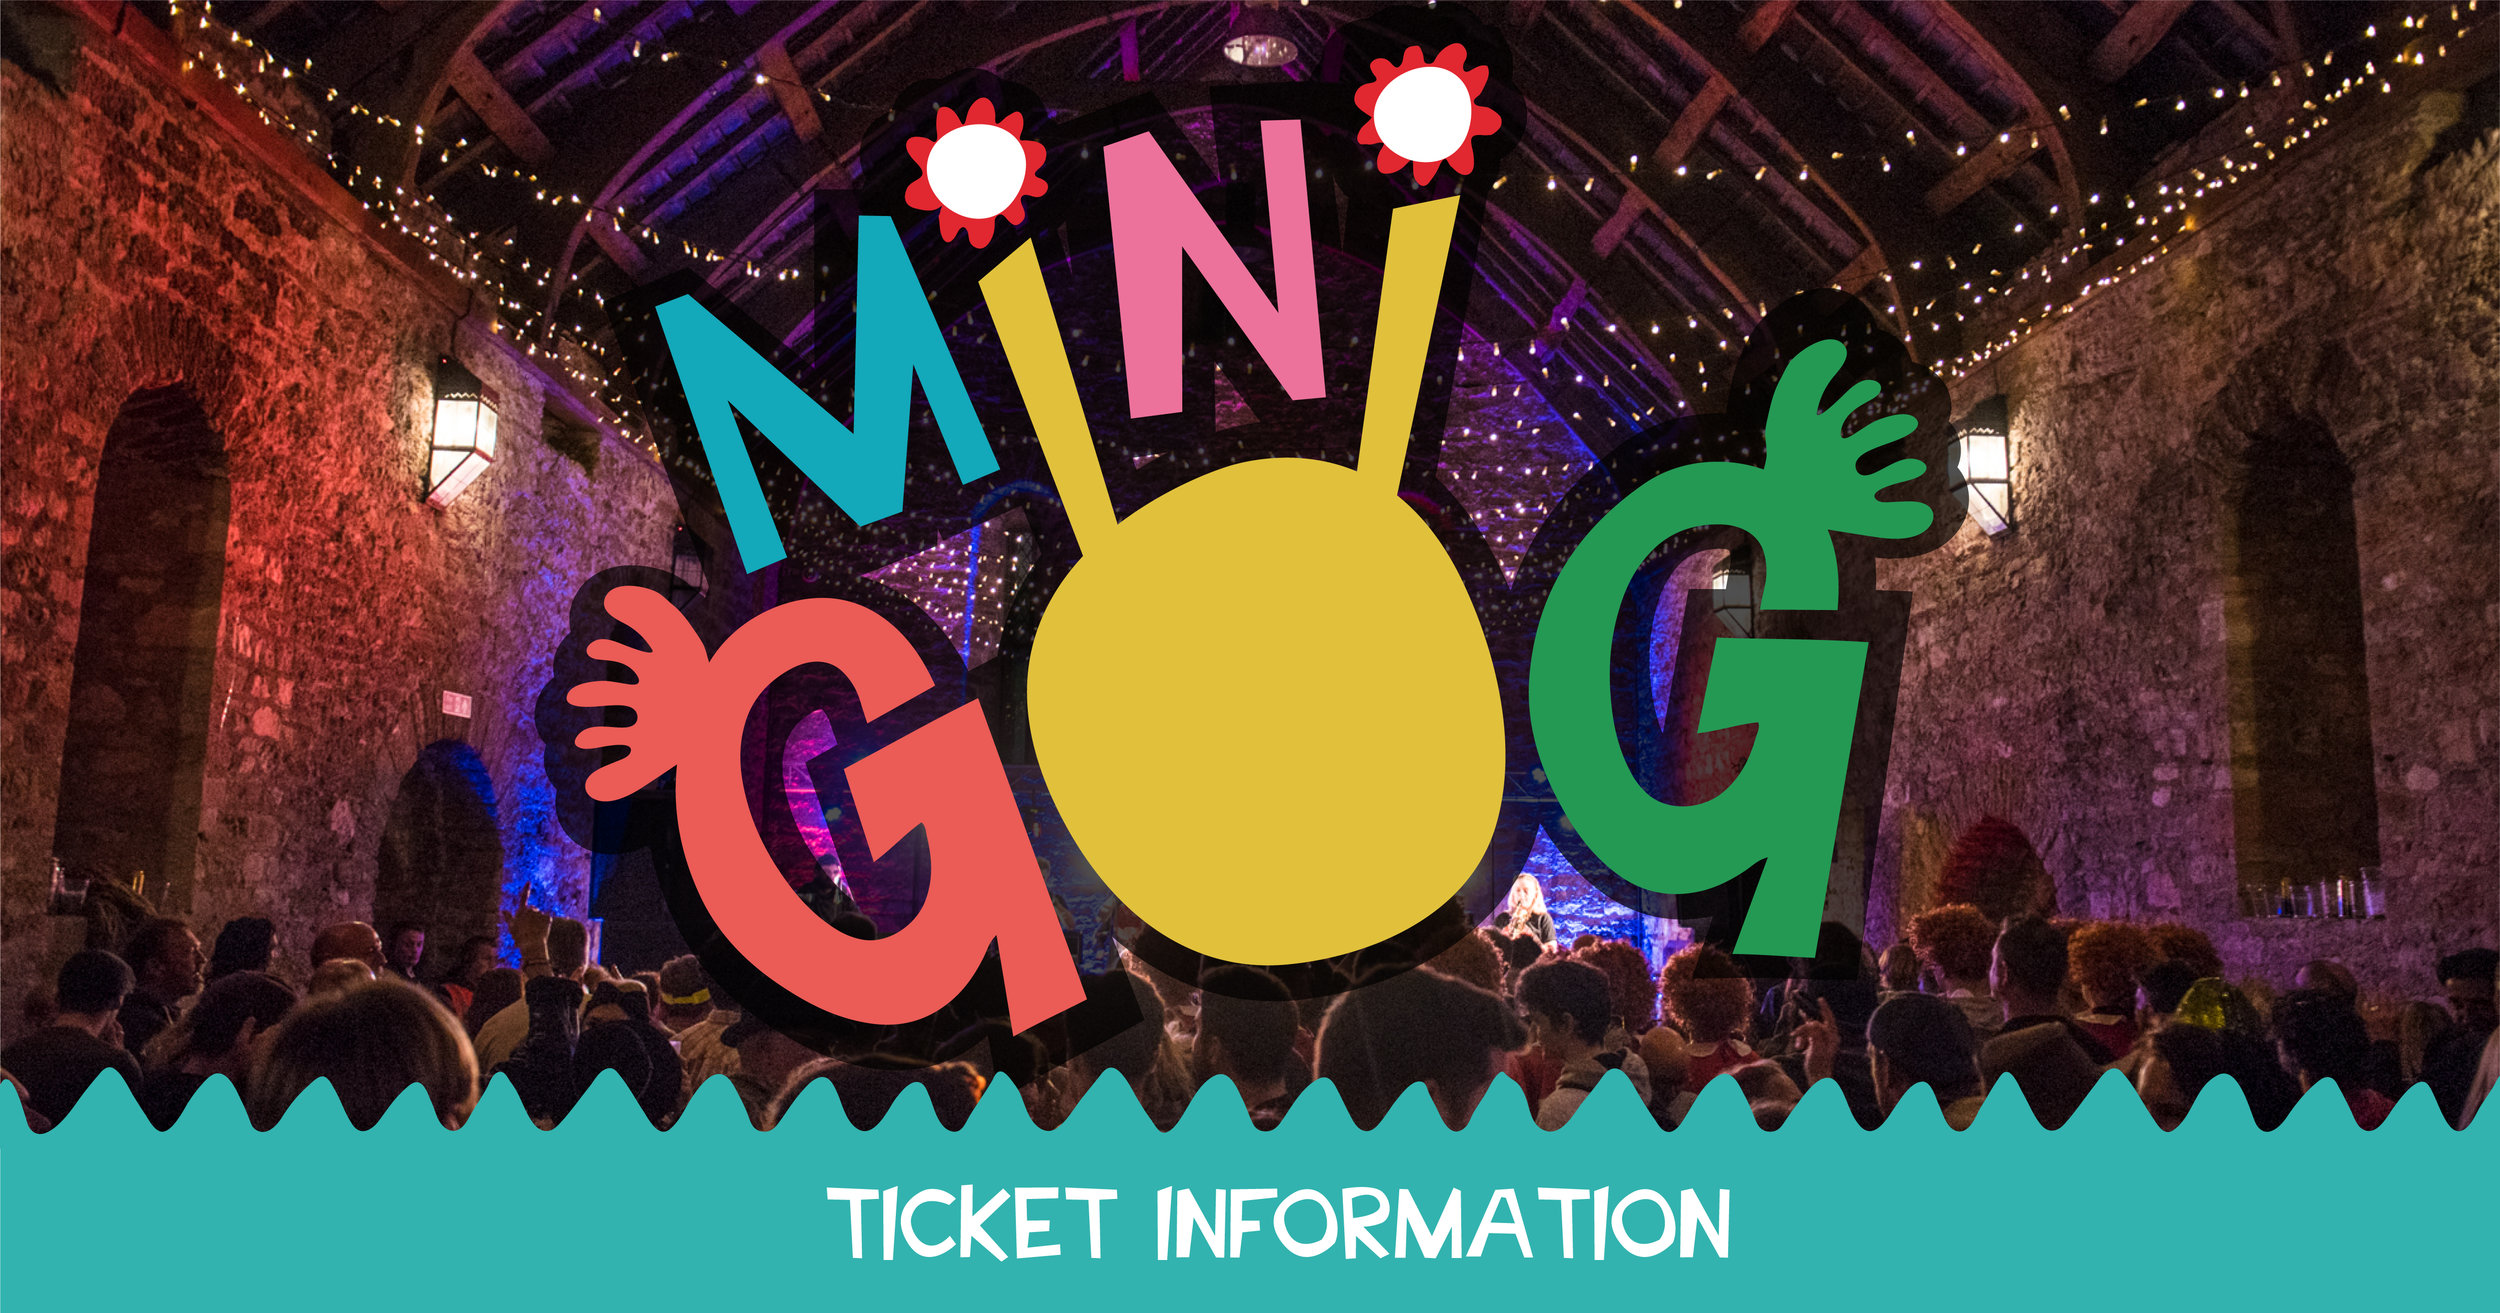 190031_minigog_FB_TICKET INFO-01.jpg